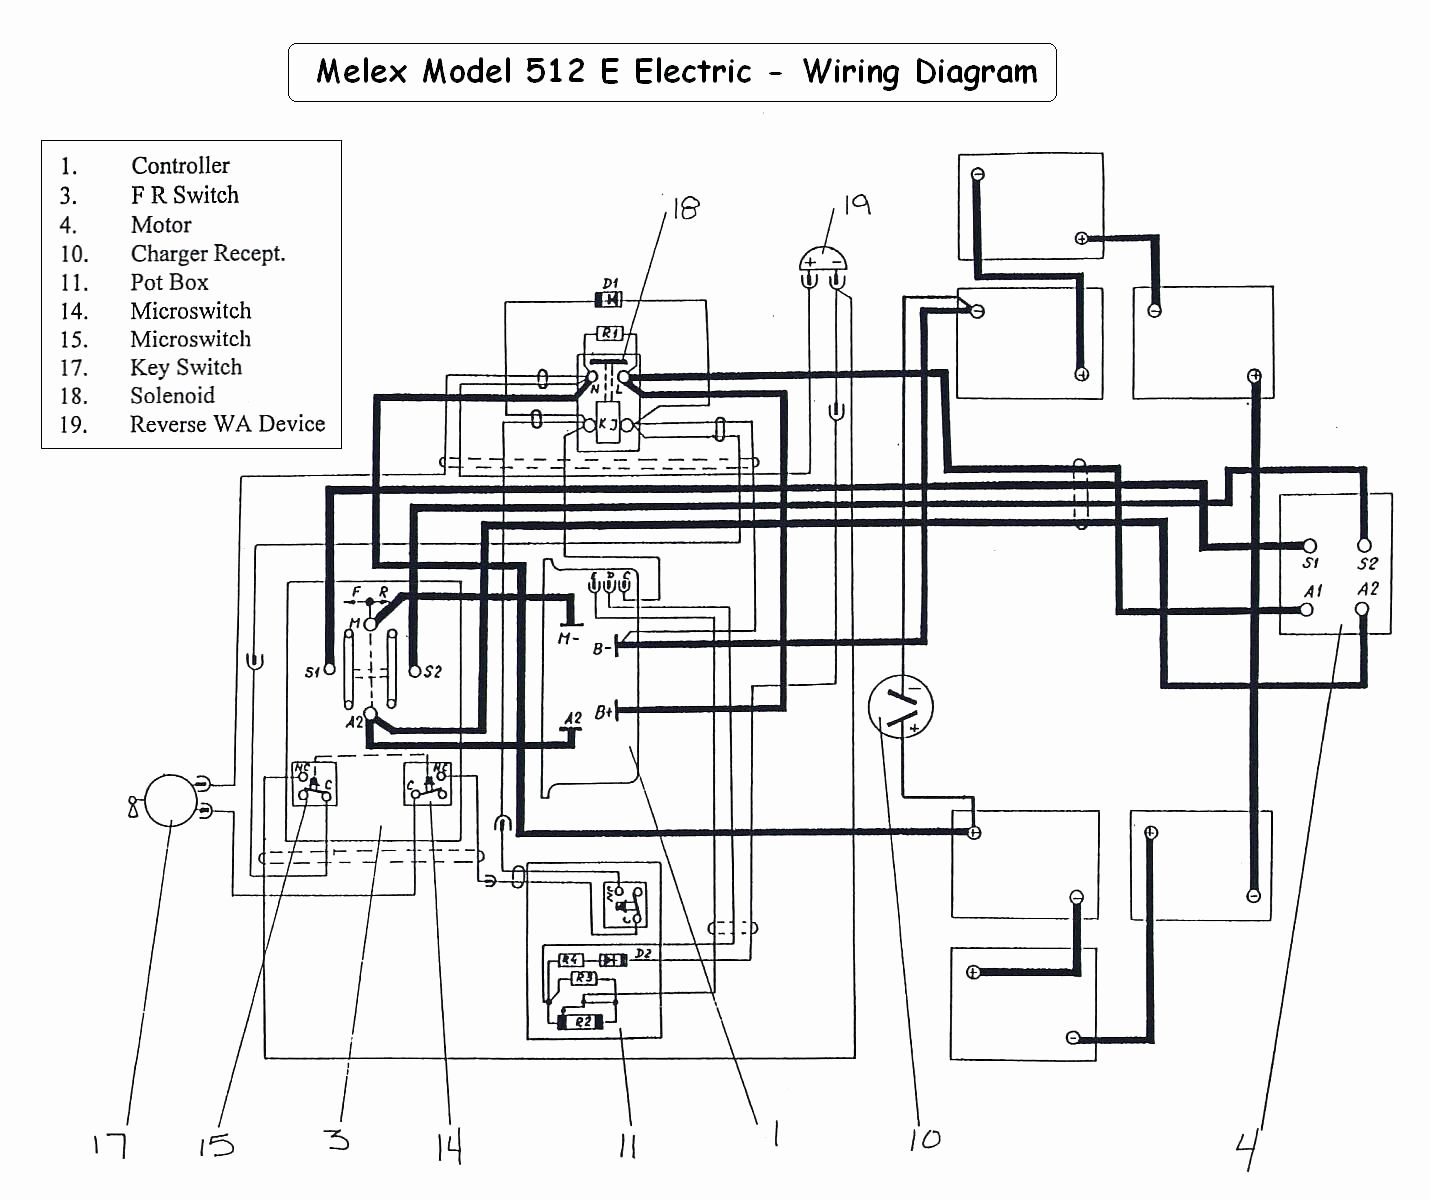 Diagram Stock Car Battery Wiring Diagram Full Version Hd Quality Wiring Diagram Mentalrewiringl Sacom It